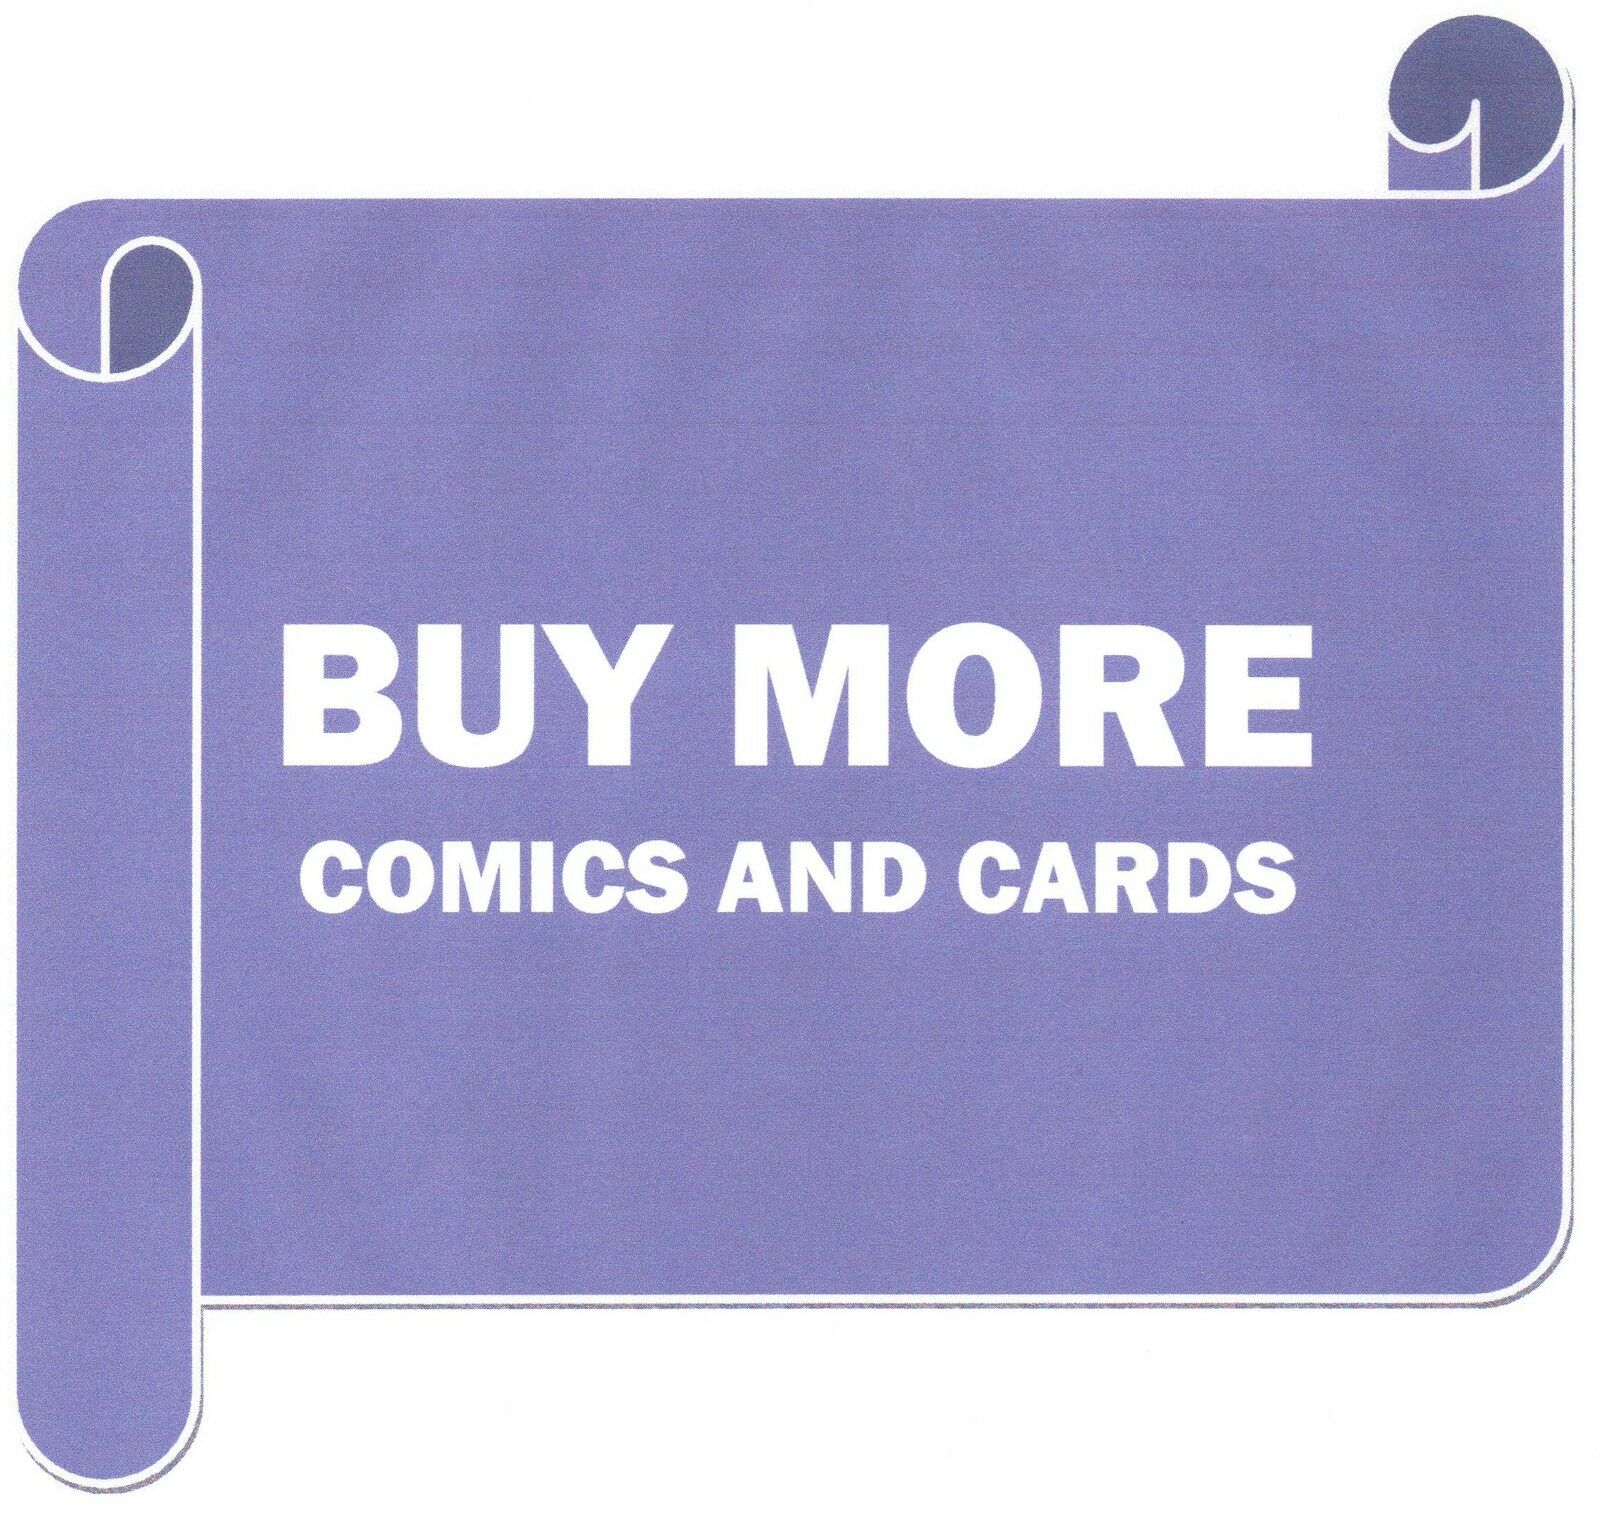 Buy More Comics and Cards